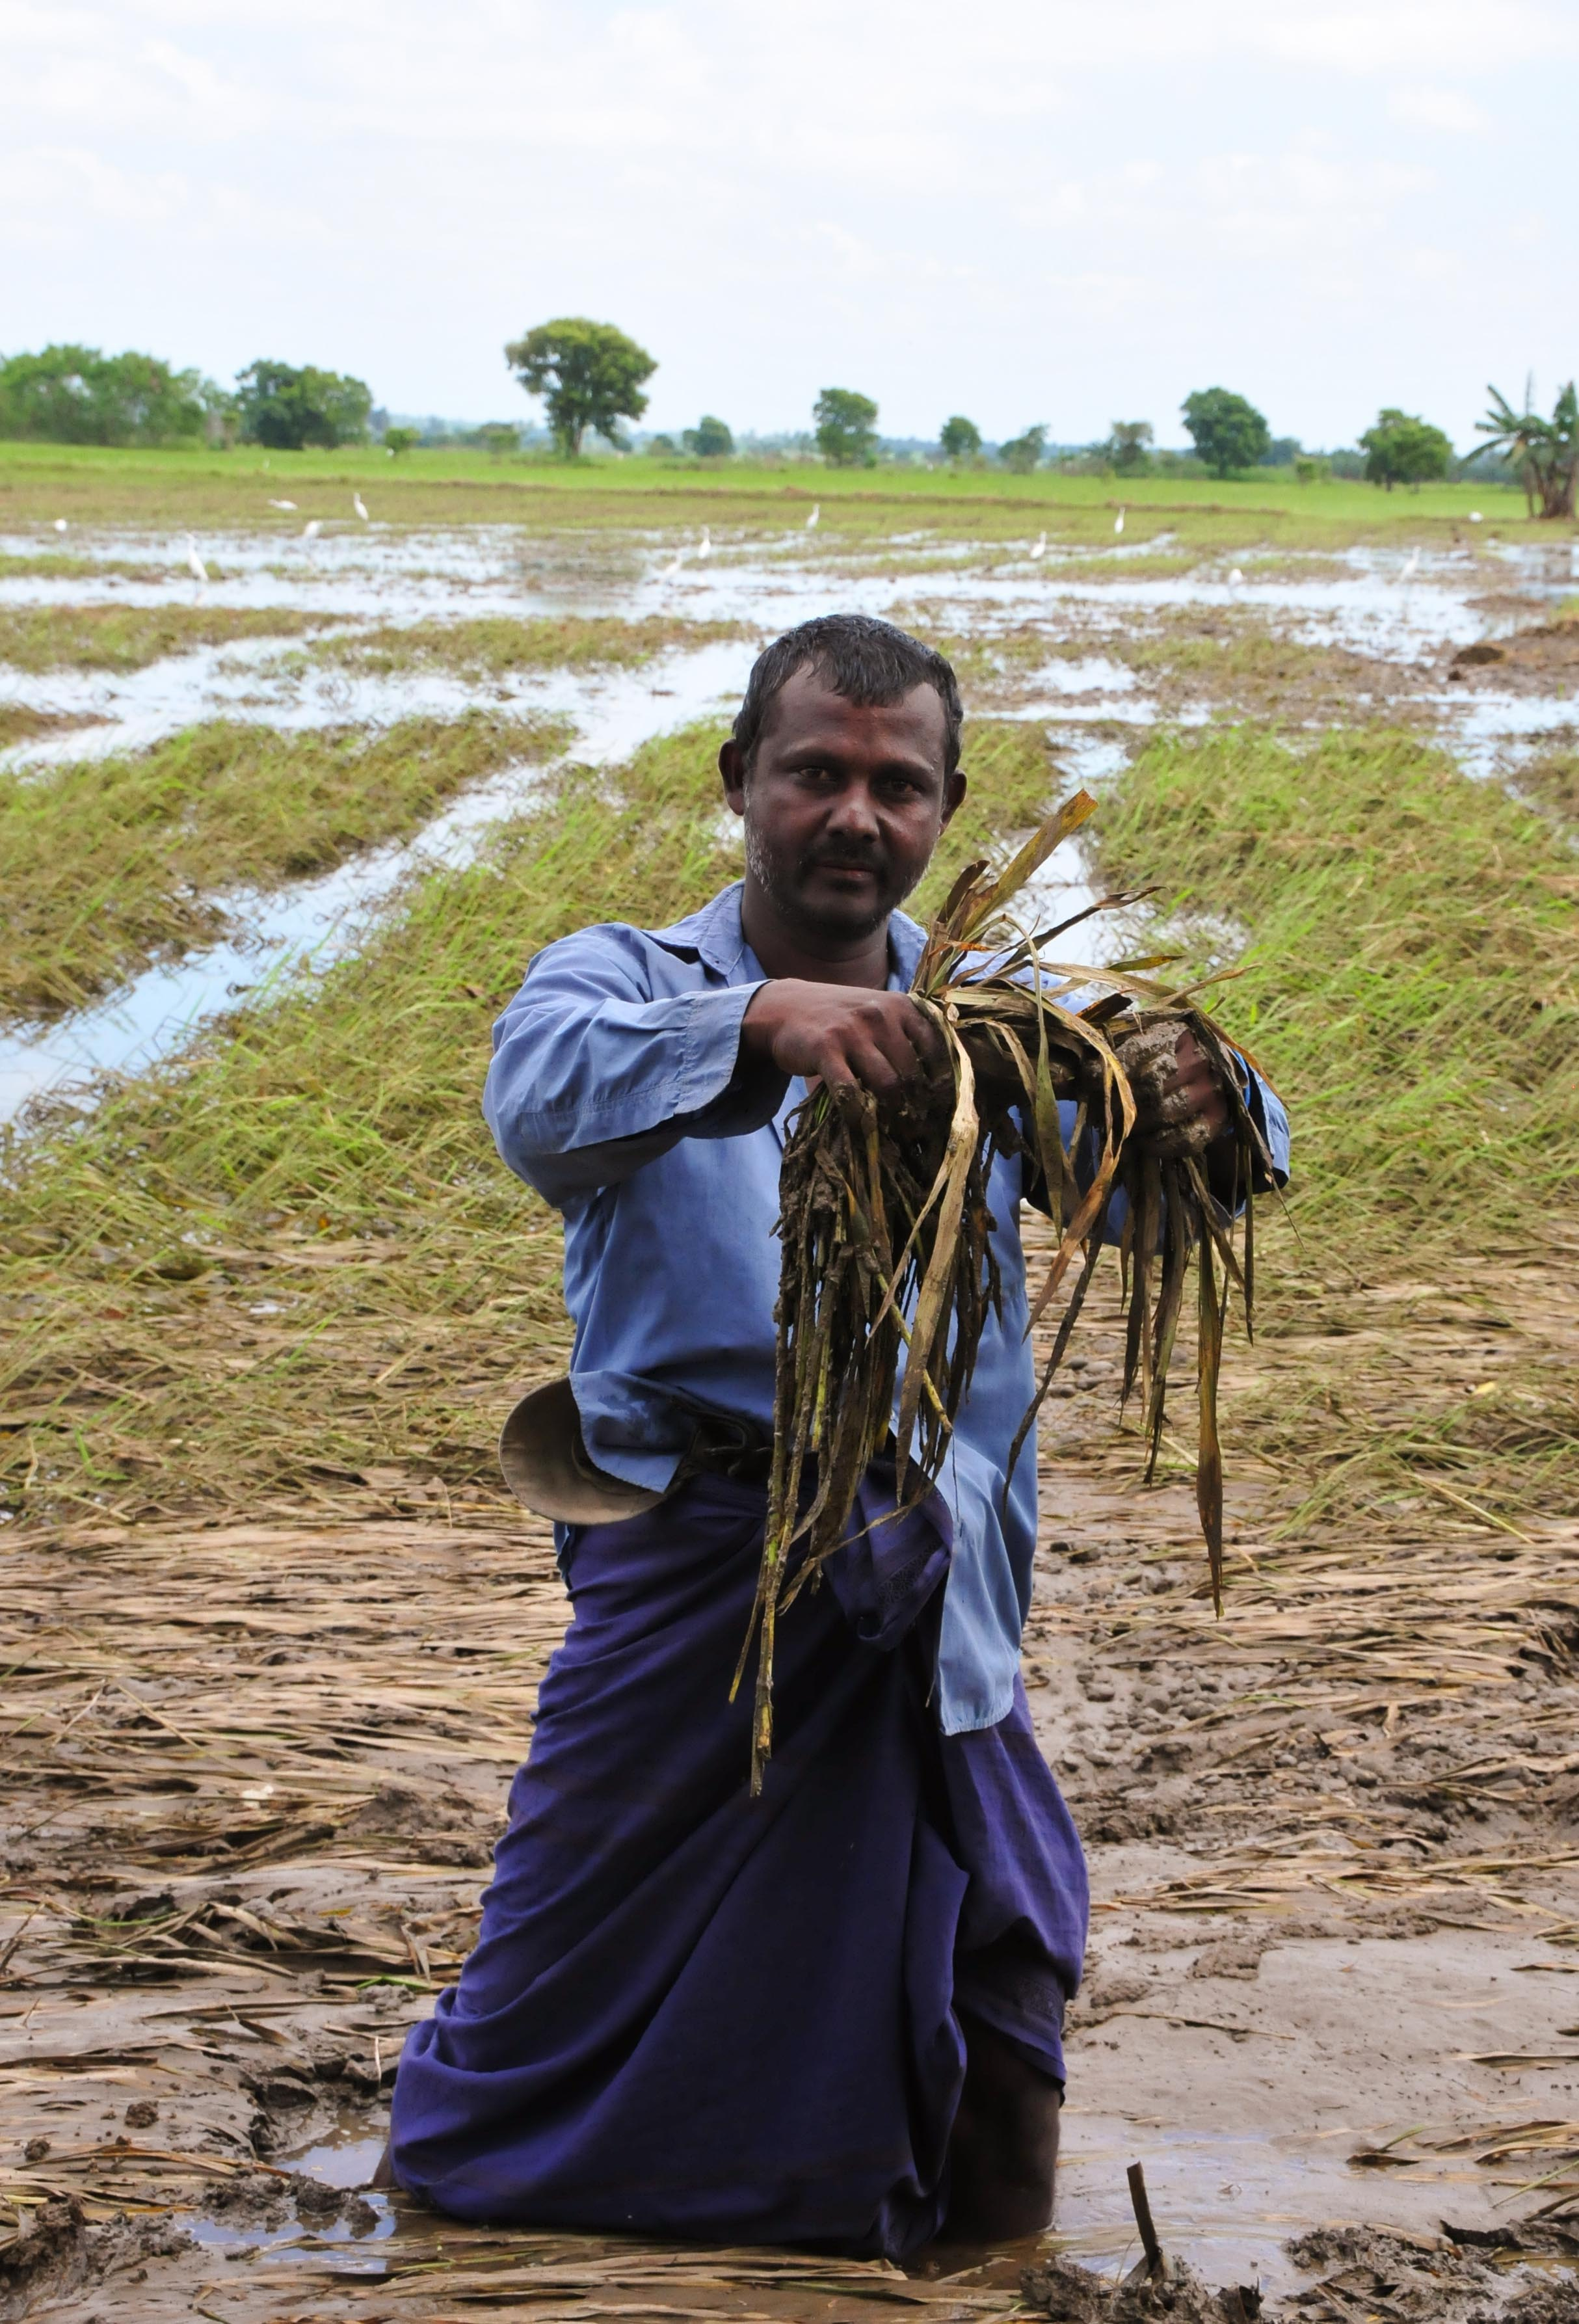 Heavy rains and flooding have badly affected paddy farmers in eastern Sri Lanka in January 2010. A farmer holds destroyed paddy plants in a field in Pansalgolla, a village in the eastern Polonnaruwa District